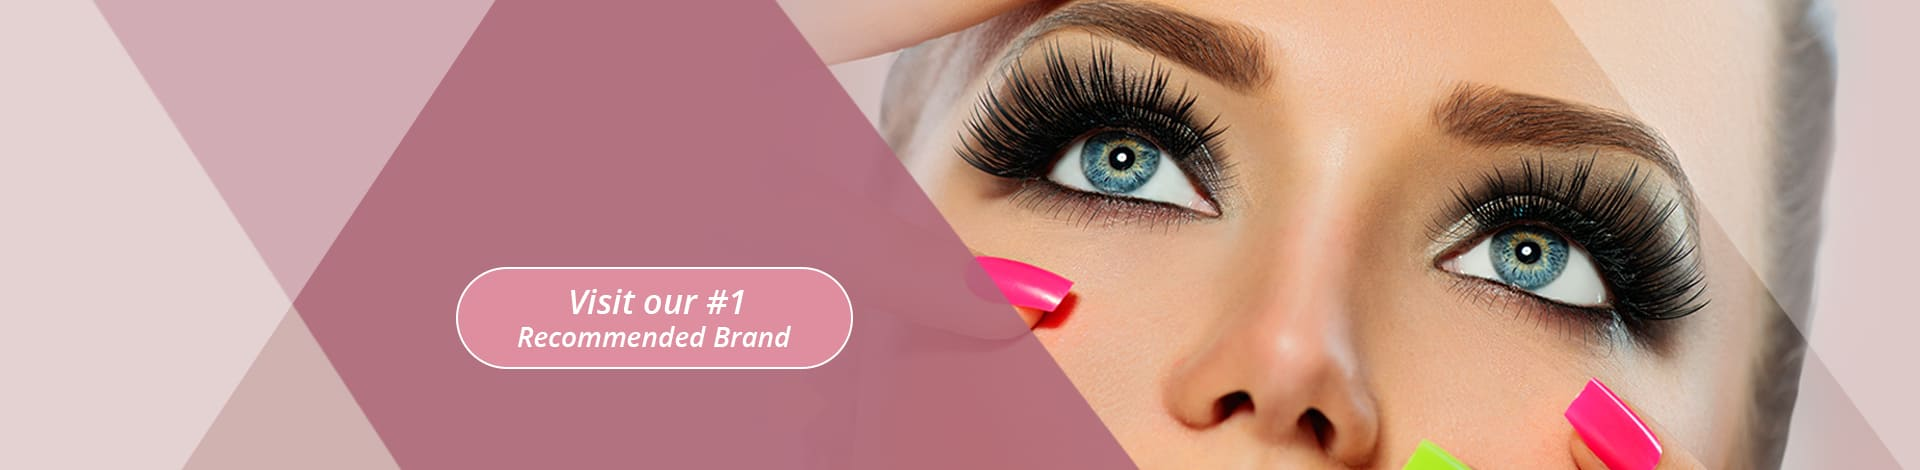 fake lashes reviews banner main 878